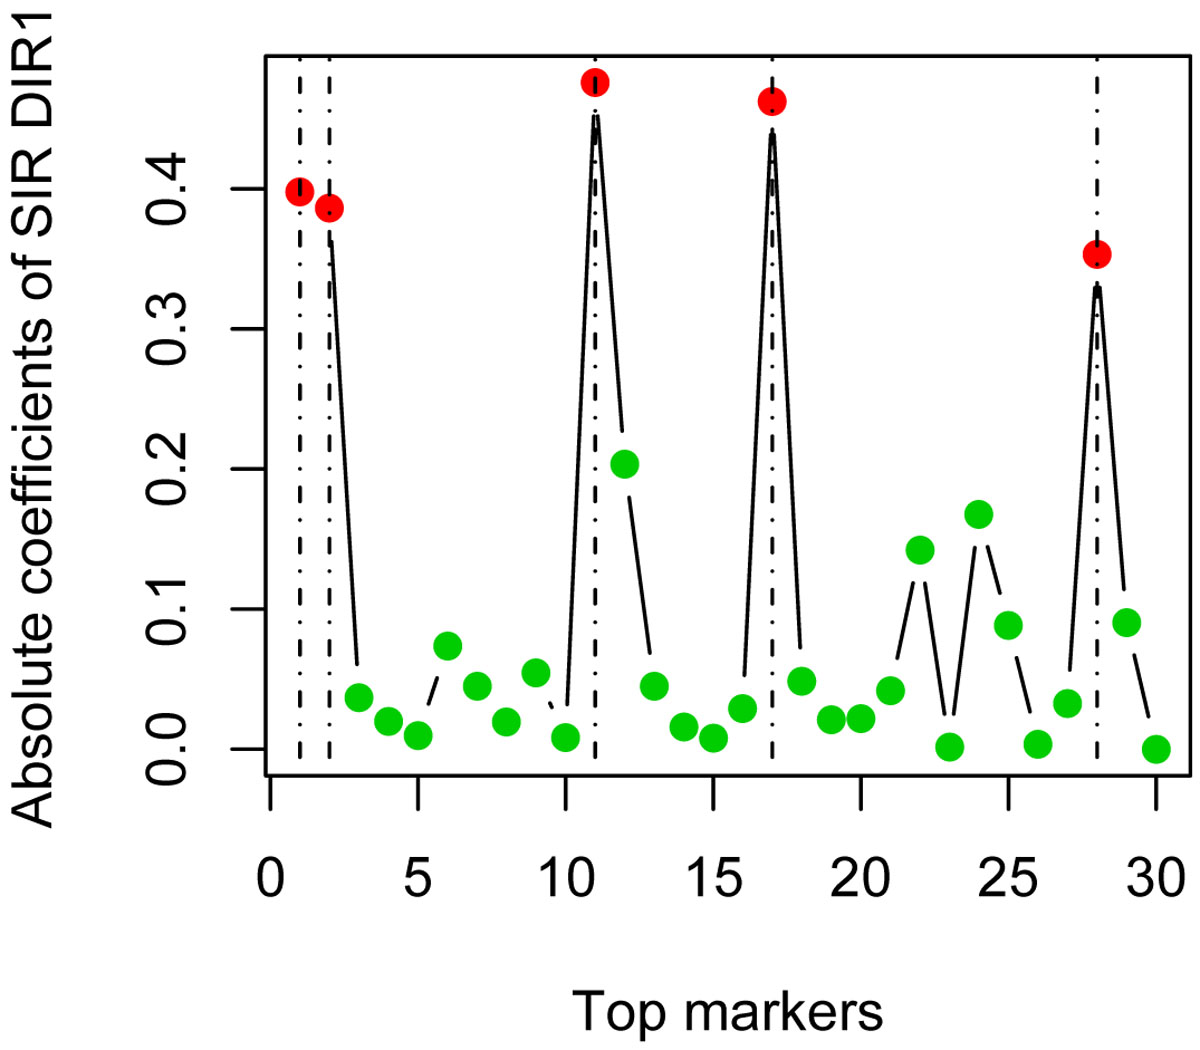 http://static-content.springer.com/image/art%3A10.1186%2F1753-6561-5-S9-S50/MediaObjects/12919_2011_Article_1101_Fig1_HTML.jpg